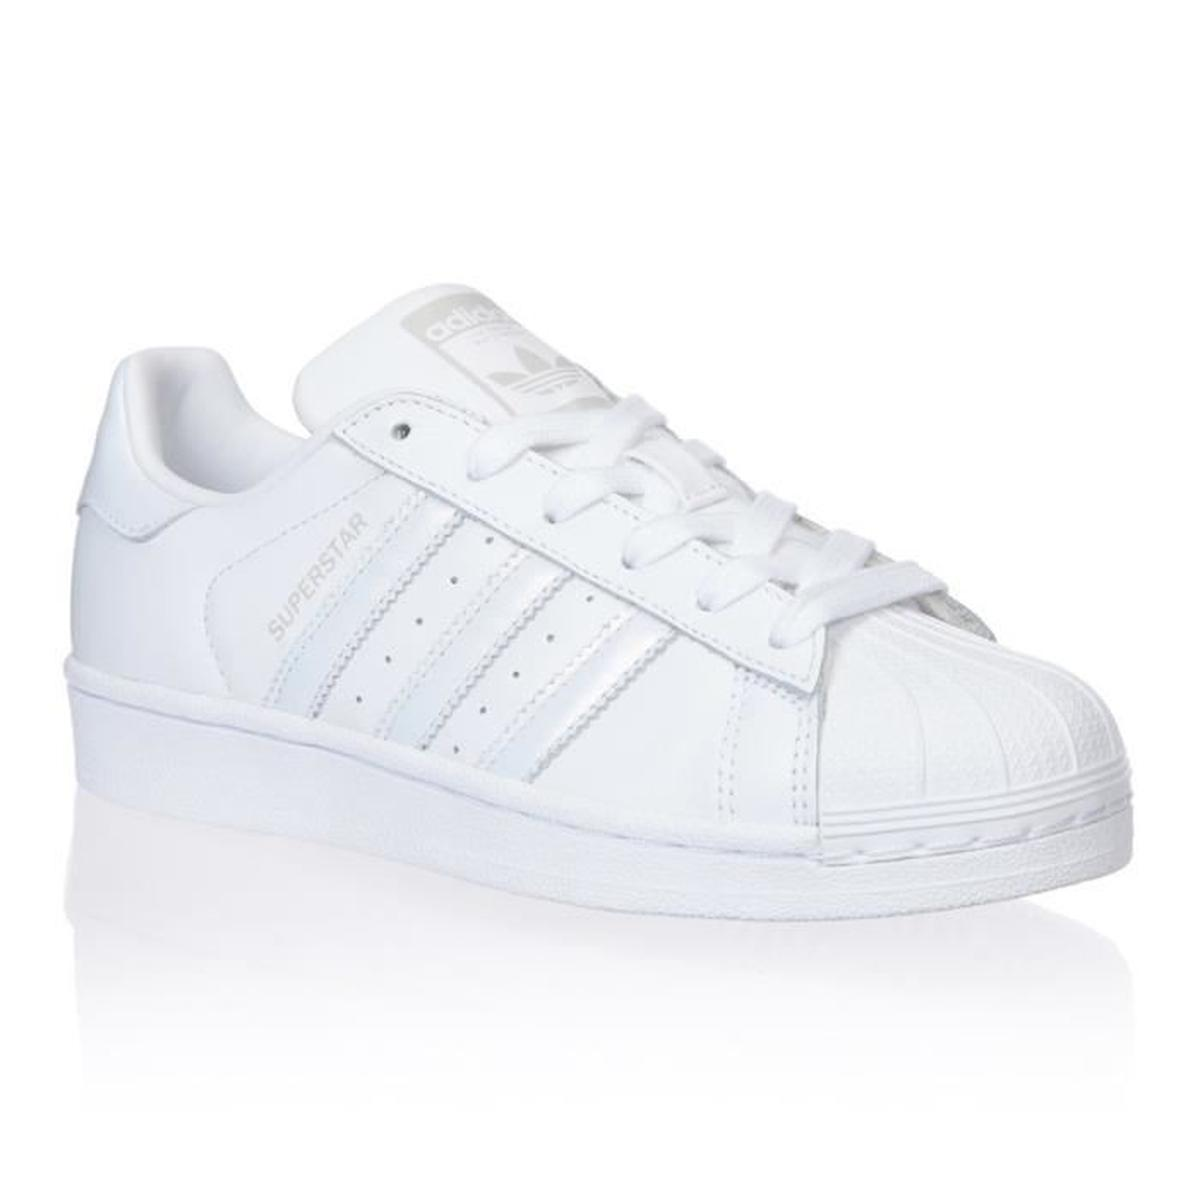 design intemporel 3300c f0e31 Superstar Blanc Superstar Adidas Femme Adidas Femme dCxhstQr